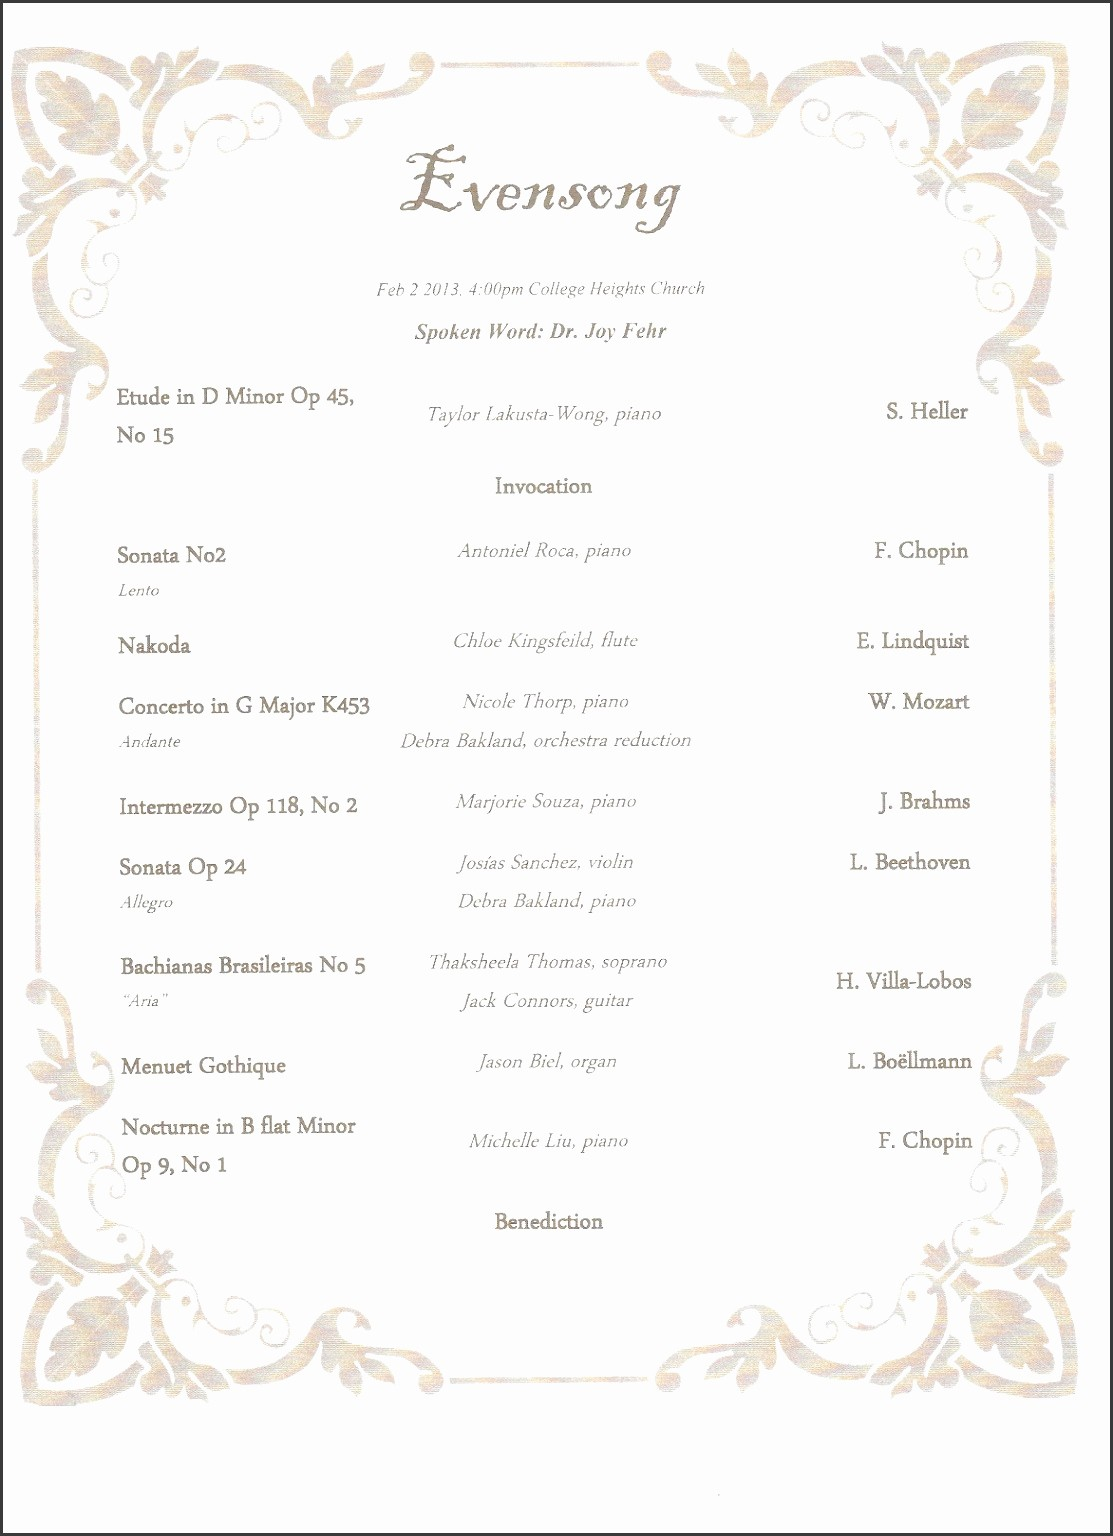 Music event Program Template Word Luxury 10 School Music event Program Template Sampletemplatess